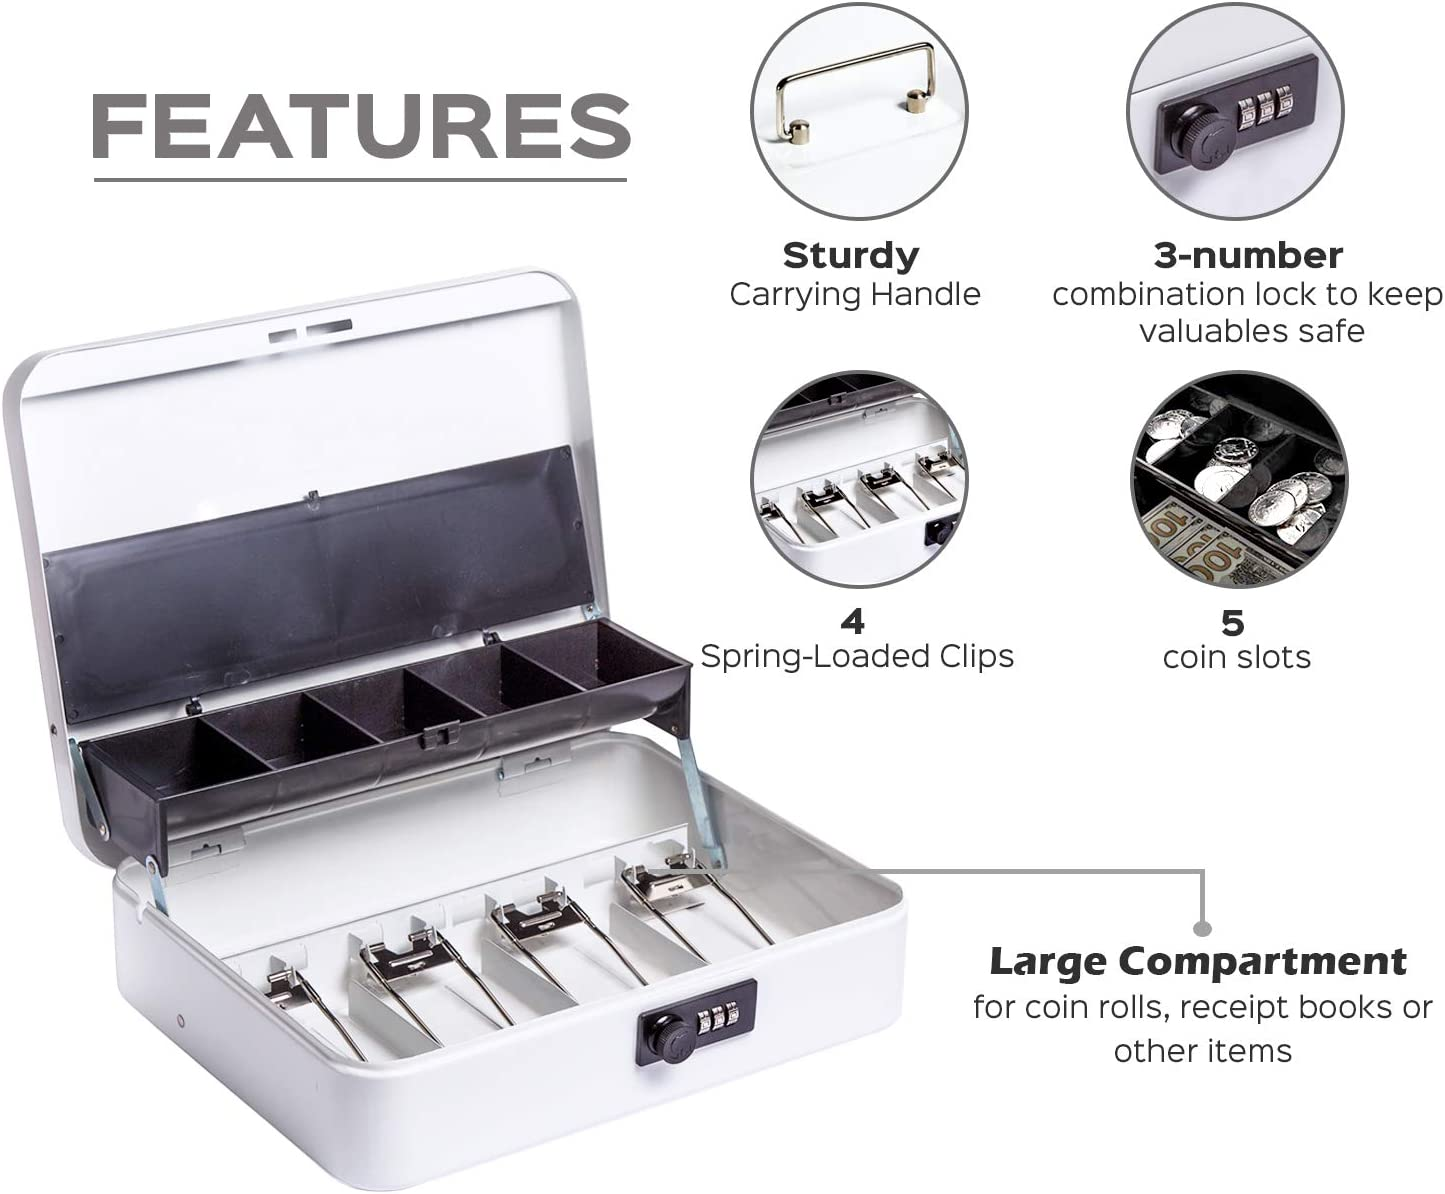 Cash Box by OSAFE Money Box with Lock /& Security Cable 5 Compartments Cash Safe Box with New Lid Coin Tray White Large 3.5H x 9.5W x 11.8L Inch Metal Money Box with 4 Keys 4 Spring Loaded